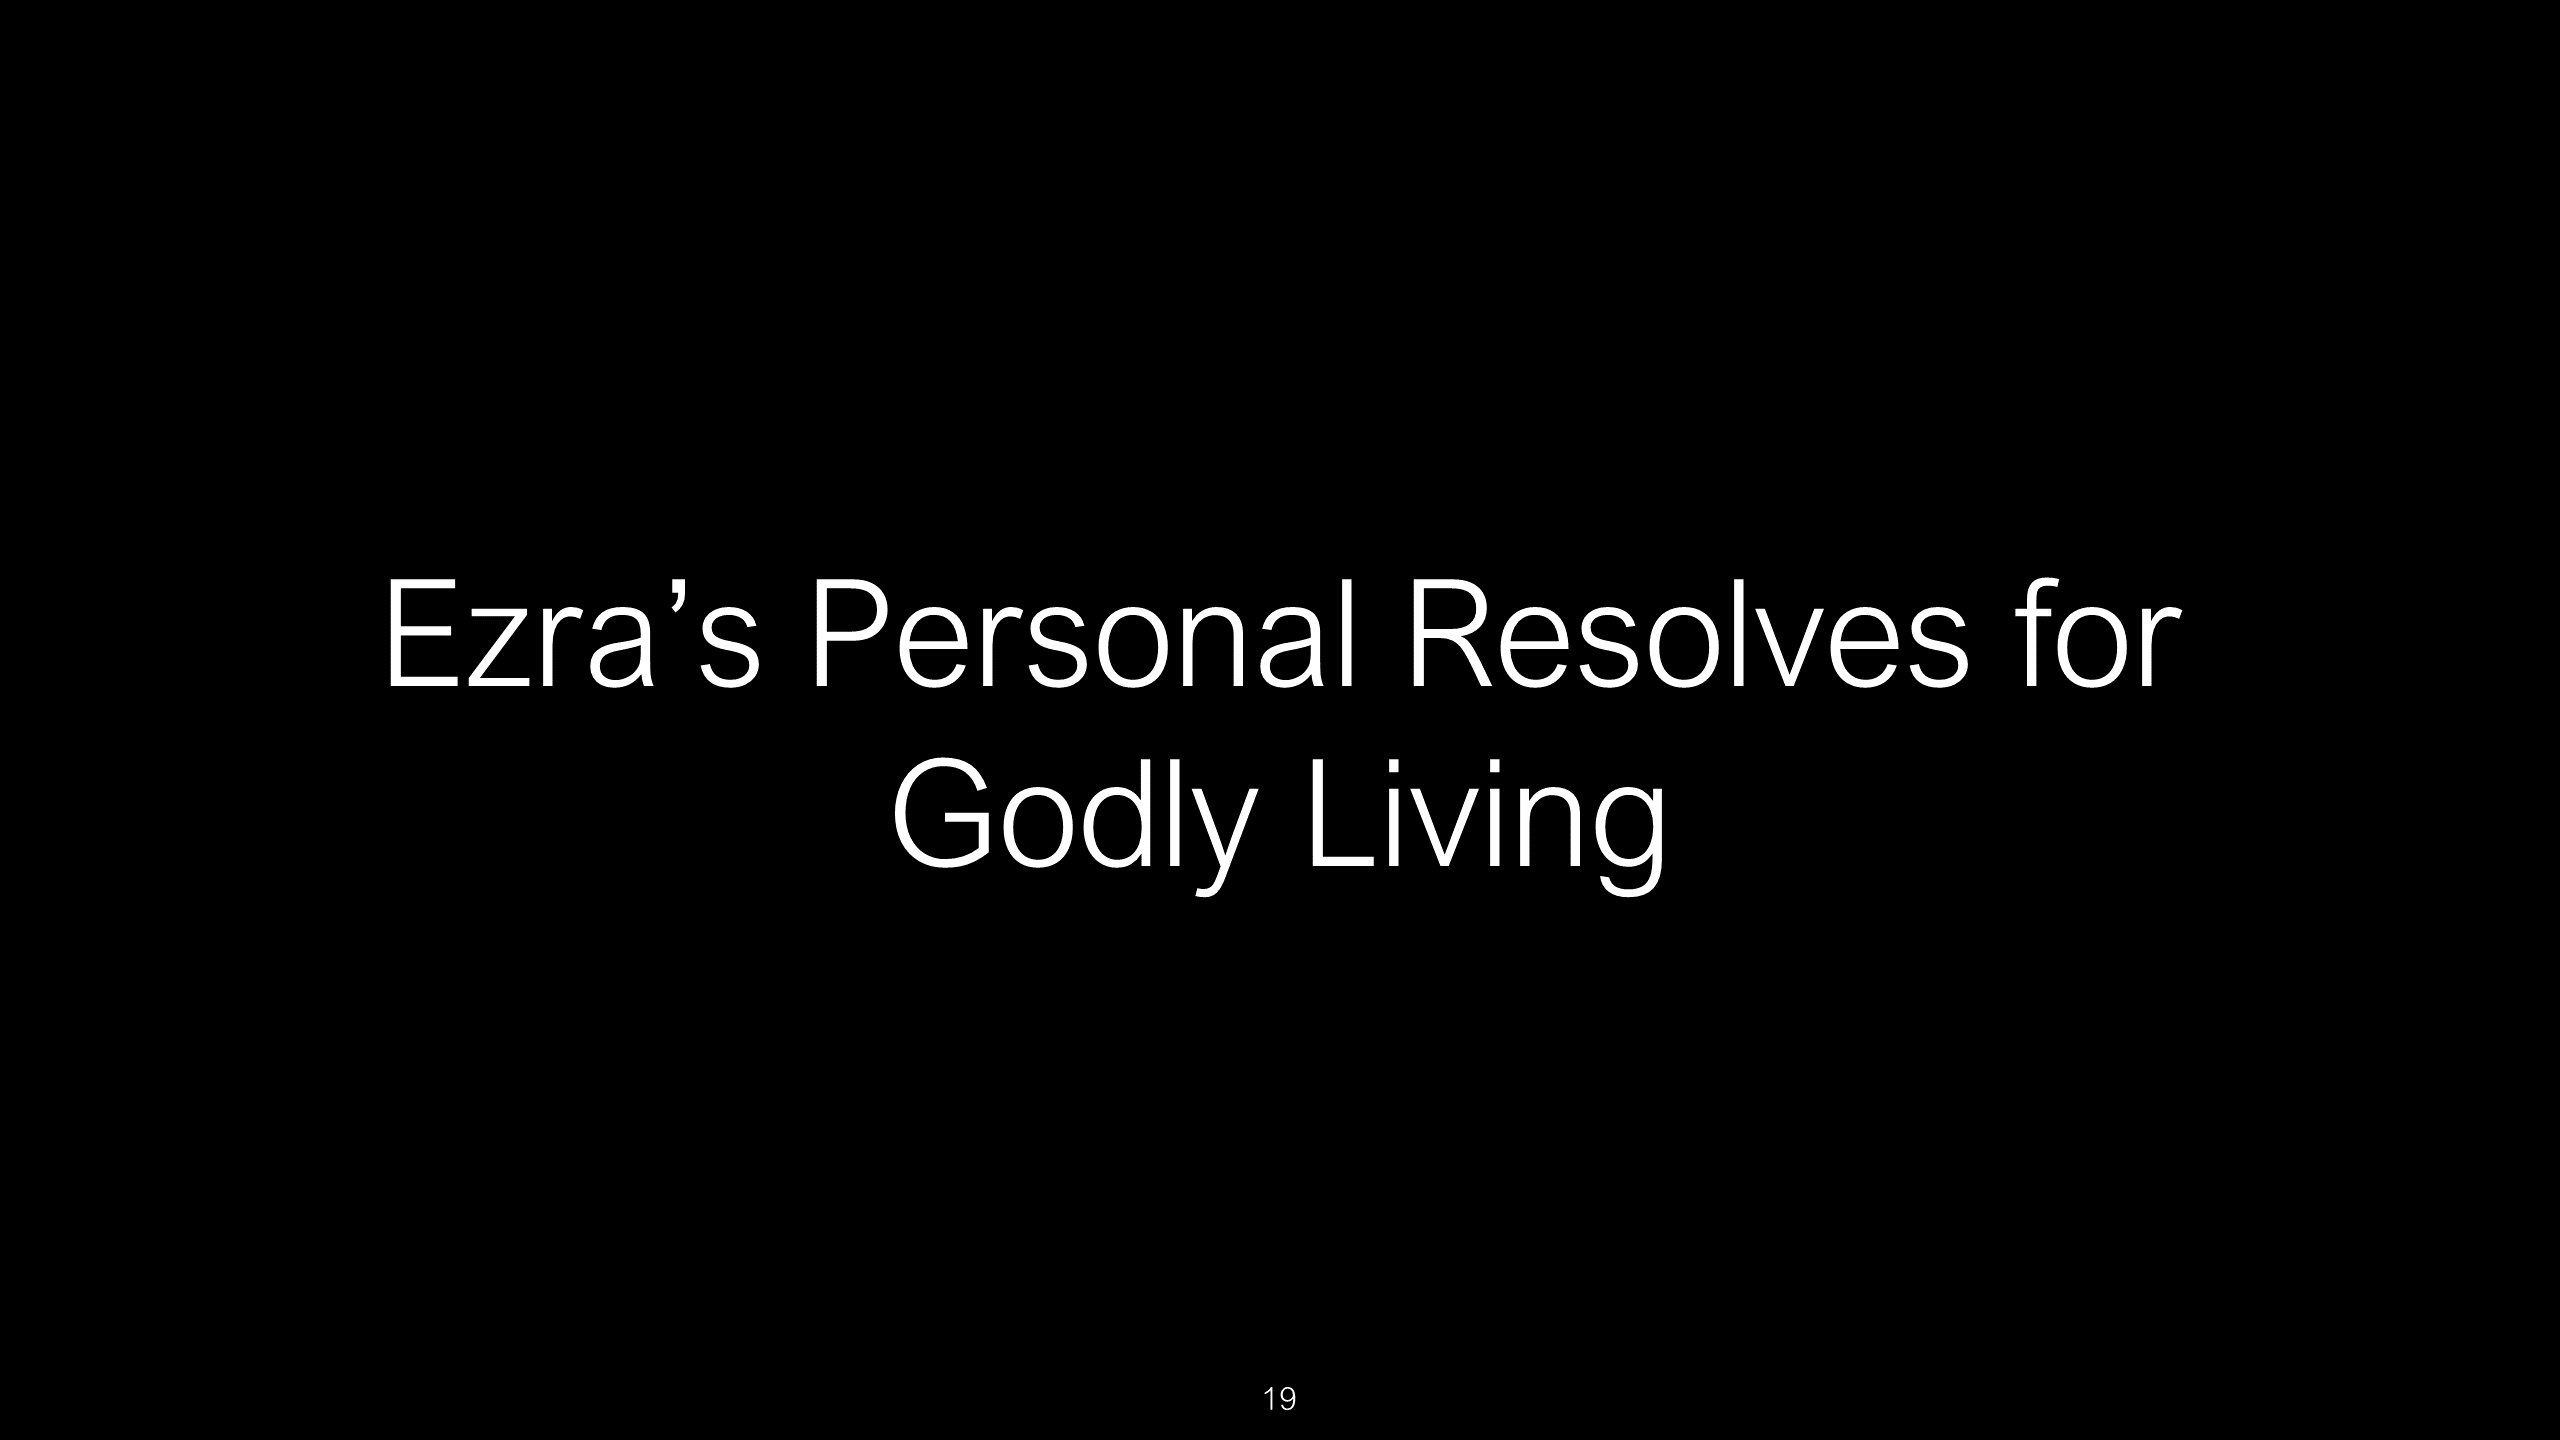 SWS-35 - Unleashing the Transforming Power of God's Word into Your Life - Exemplified by Ezra (19)